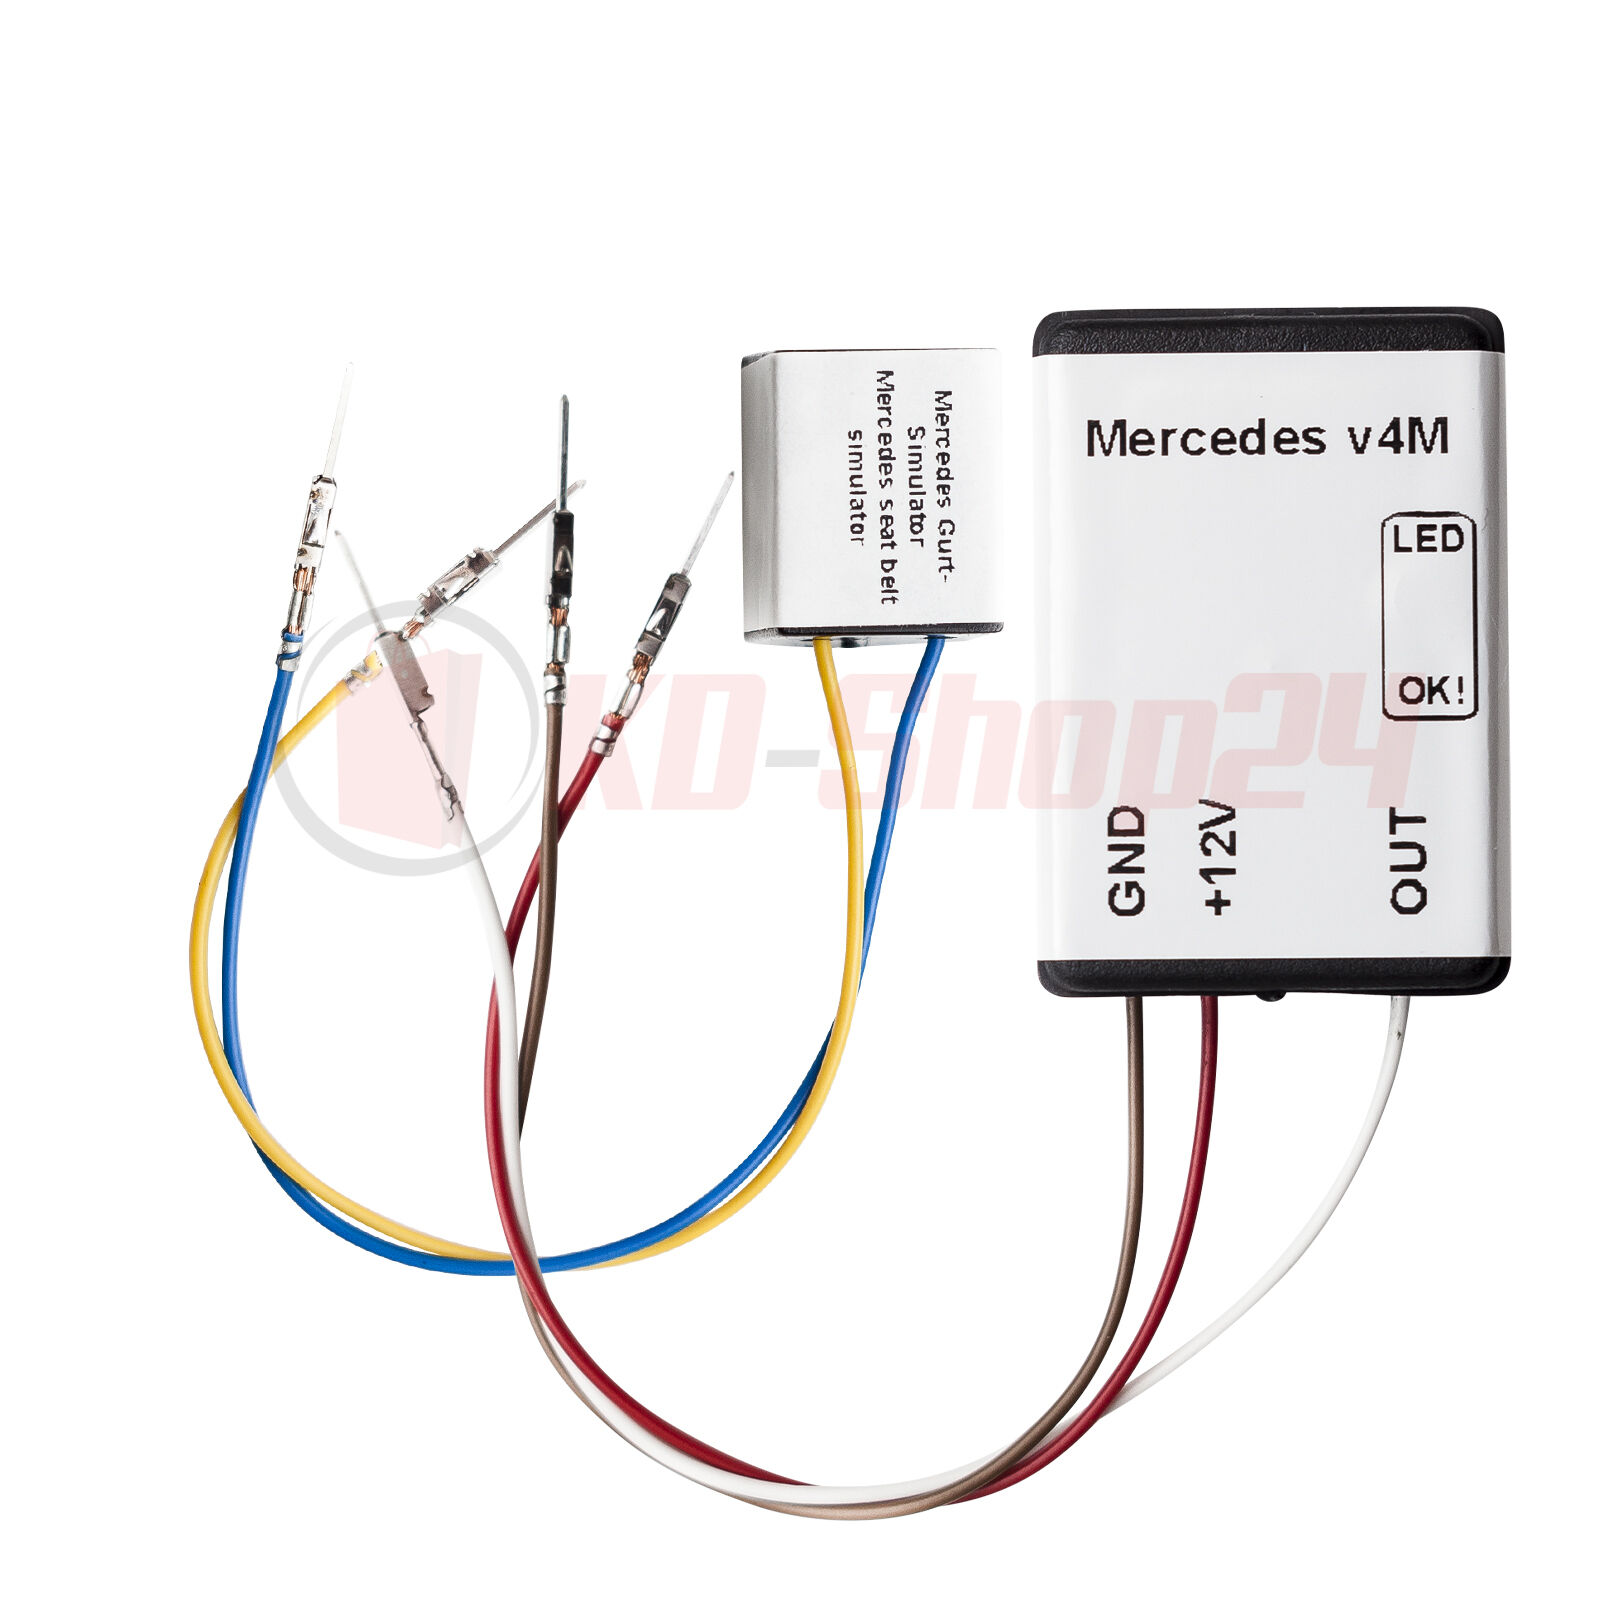 emulator for mercedes benz passenger seat occupancy mat sensor srs rh ebay com Compressor Relay Wiring Diagram Compressor Relay Wiring Diagram